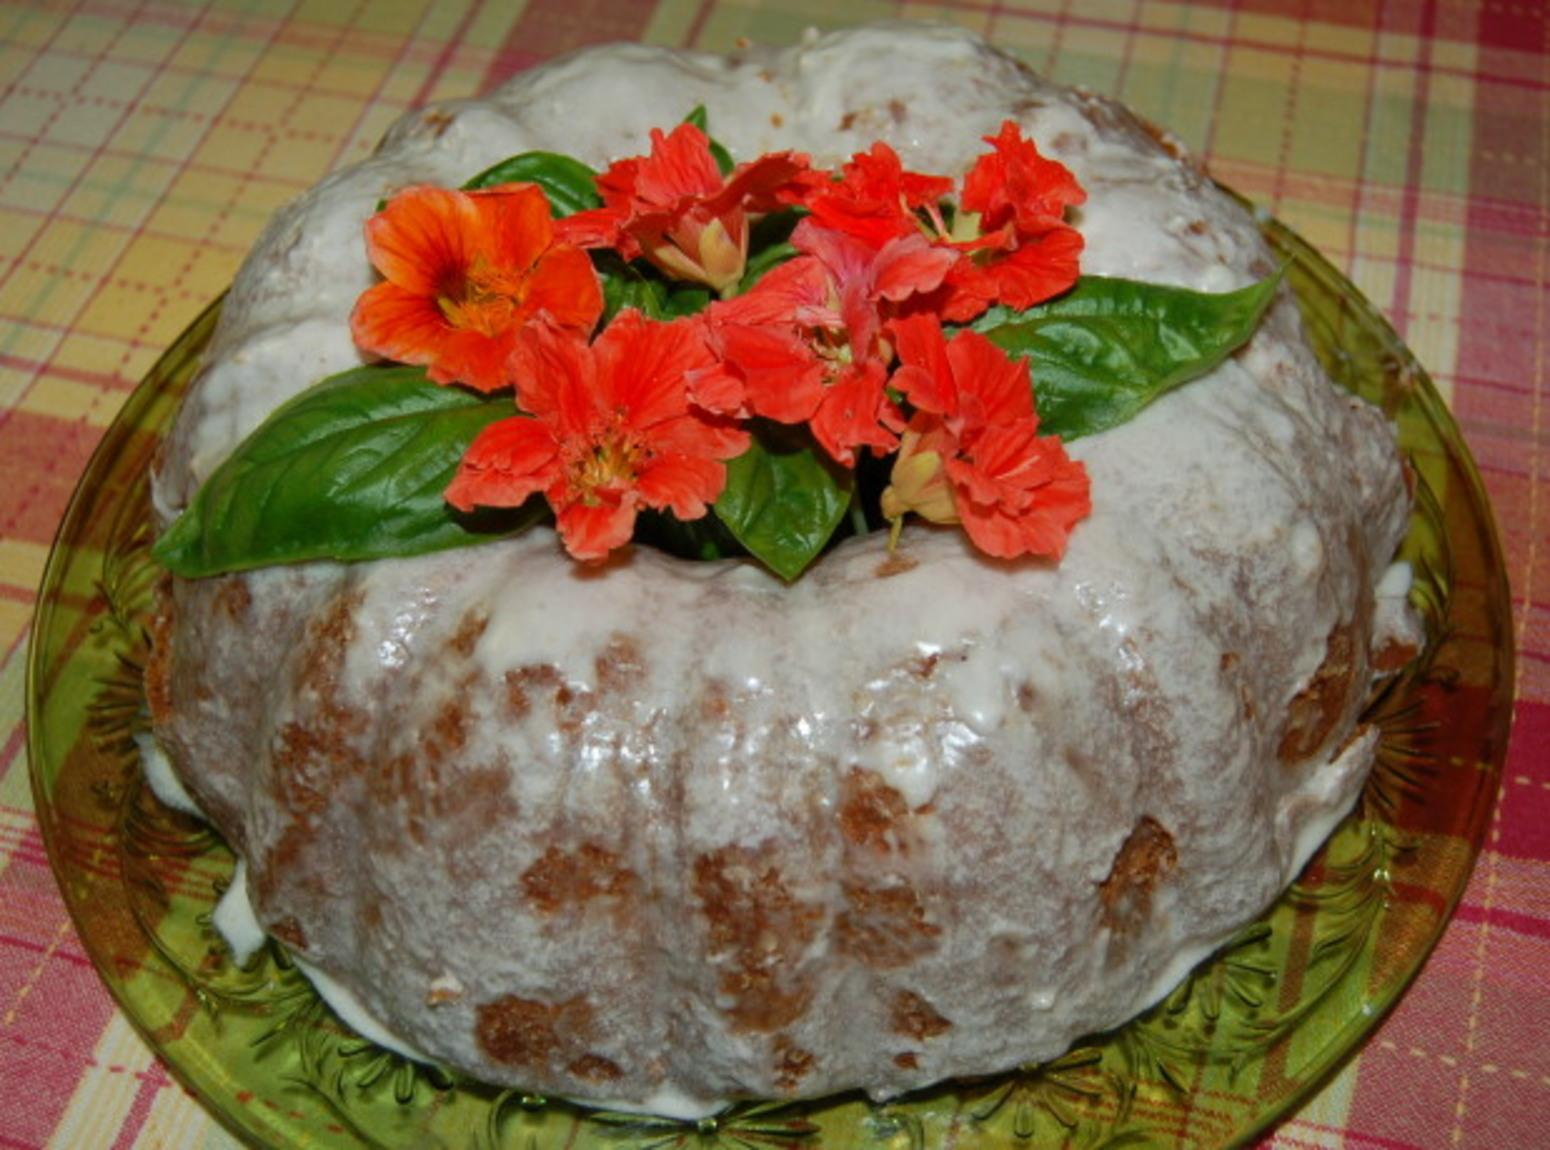 Funeral Pound Cake With Glaze Recipe